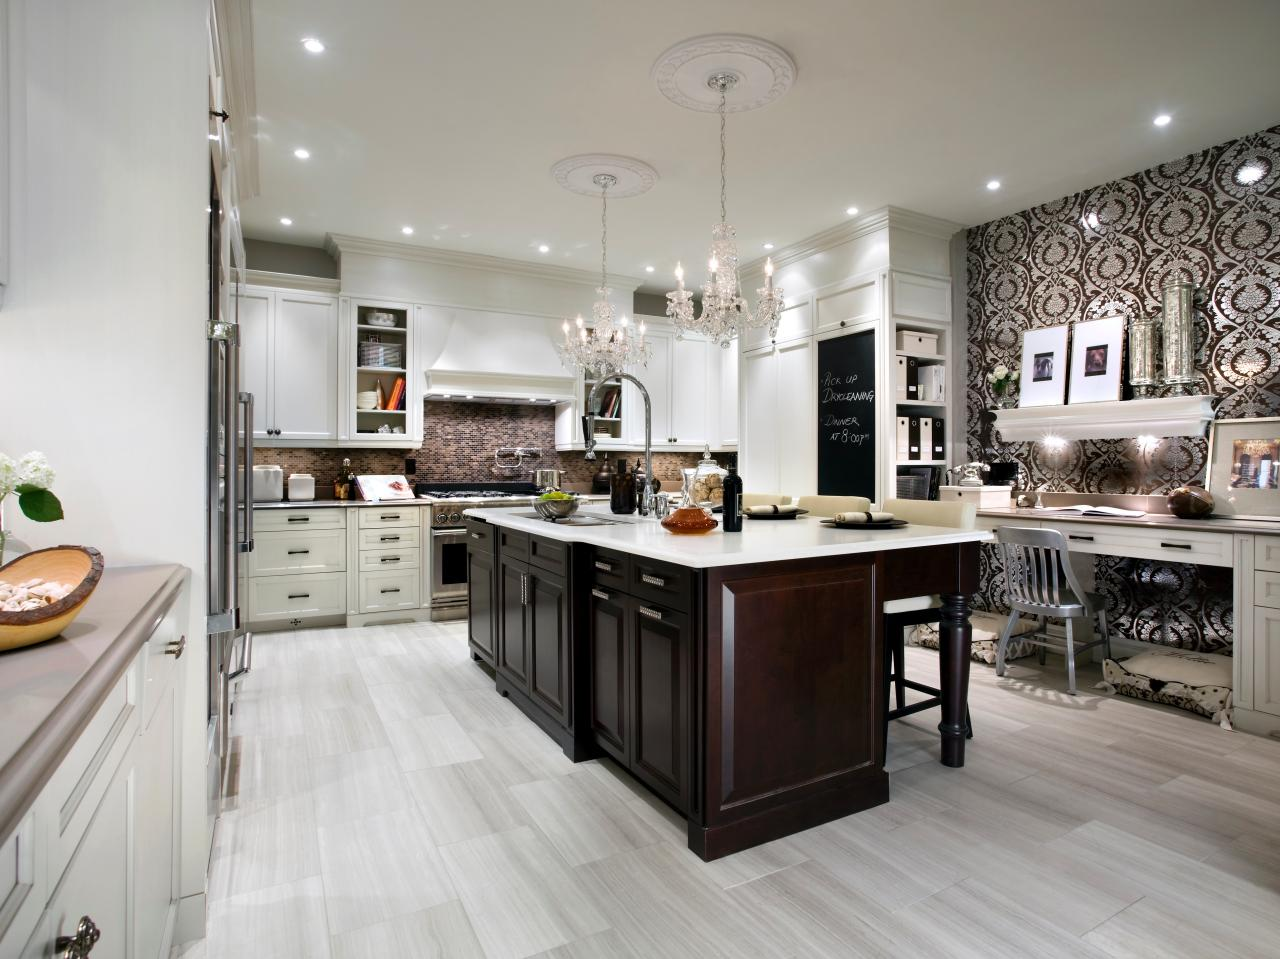 kitchens designed by candice olson inviting kitchen designs by candice kitchen ideas 388